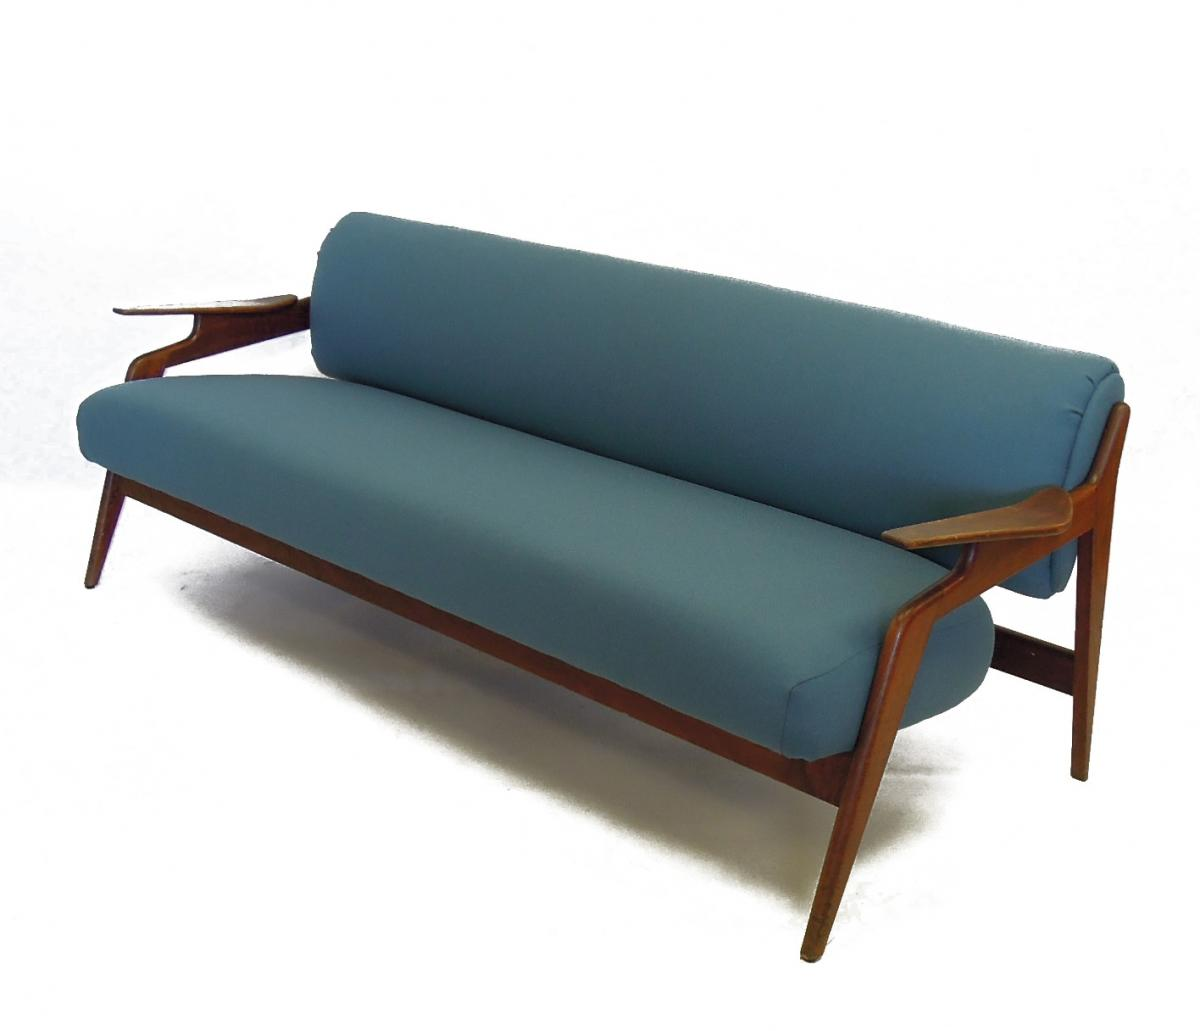 Image of: danish mid century sofa